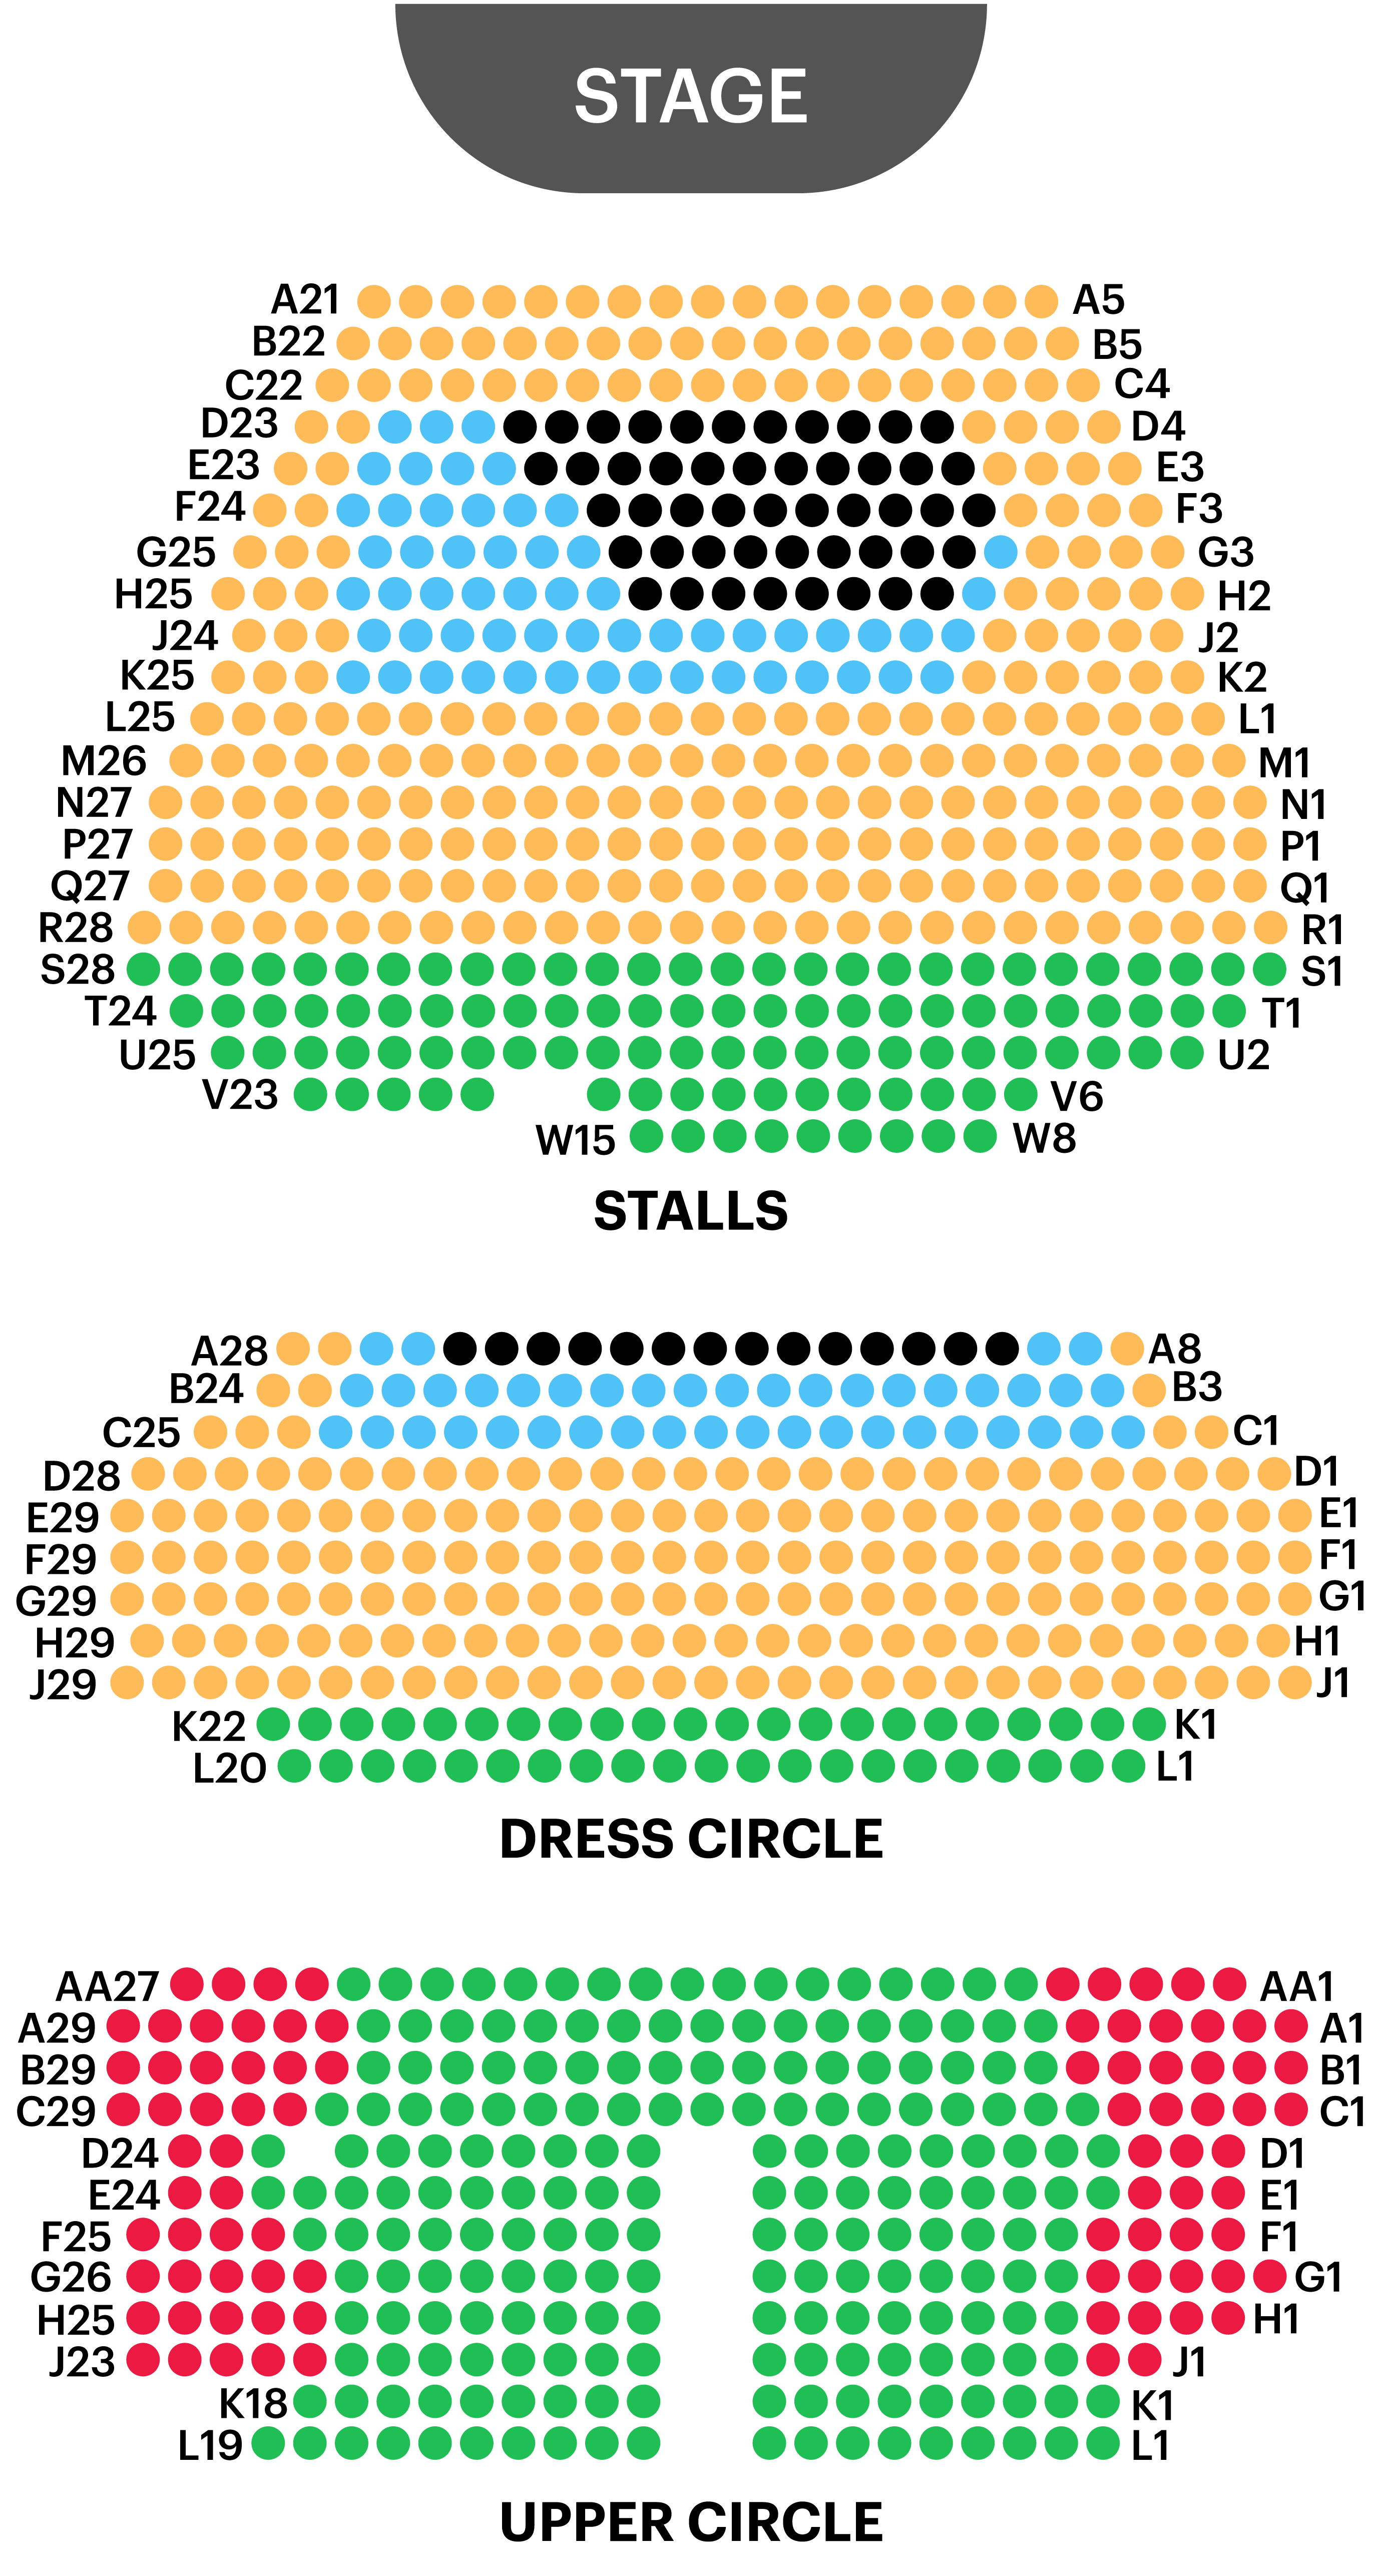 Queens Theatre Seating Map